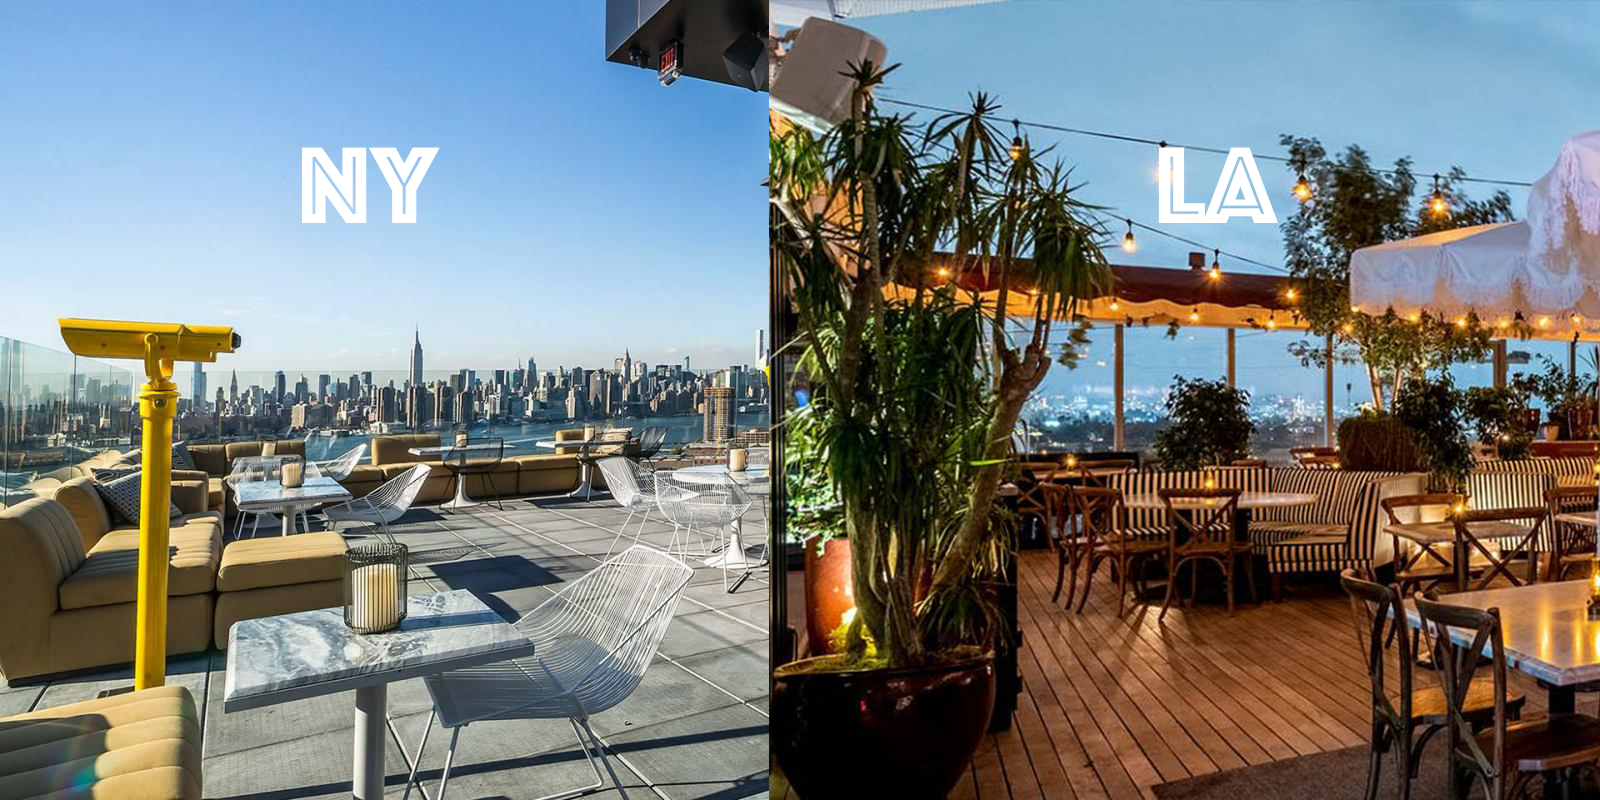 Westlight-NYC-Terrace-View-190410120019004-2.png